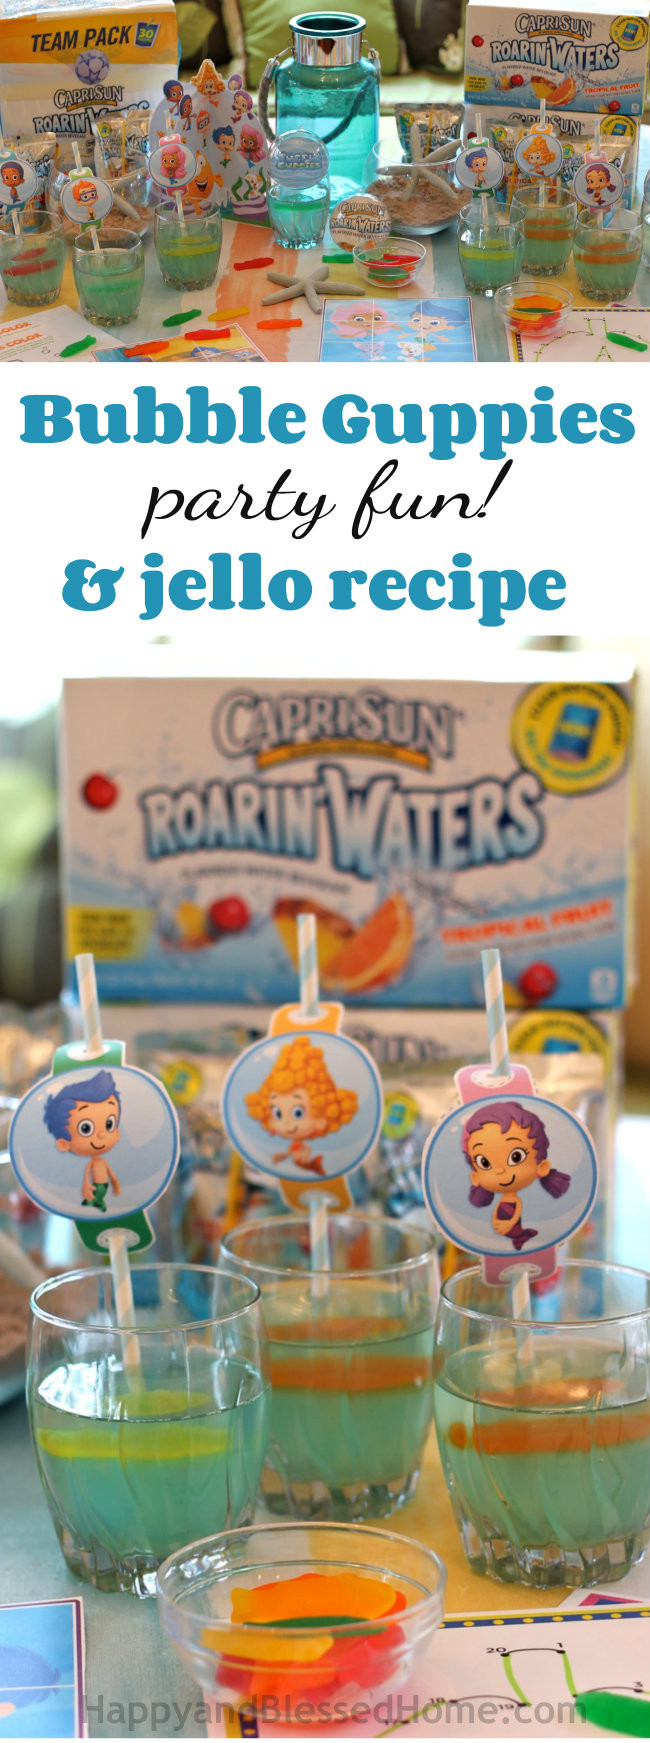 Bubble Guppies Party Fun and Jello Recipe from HappyandBlessedHome.com